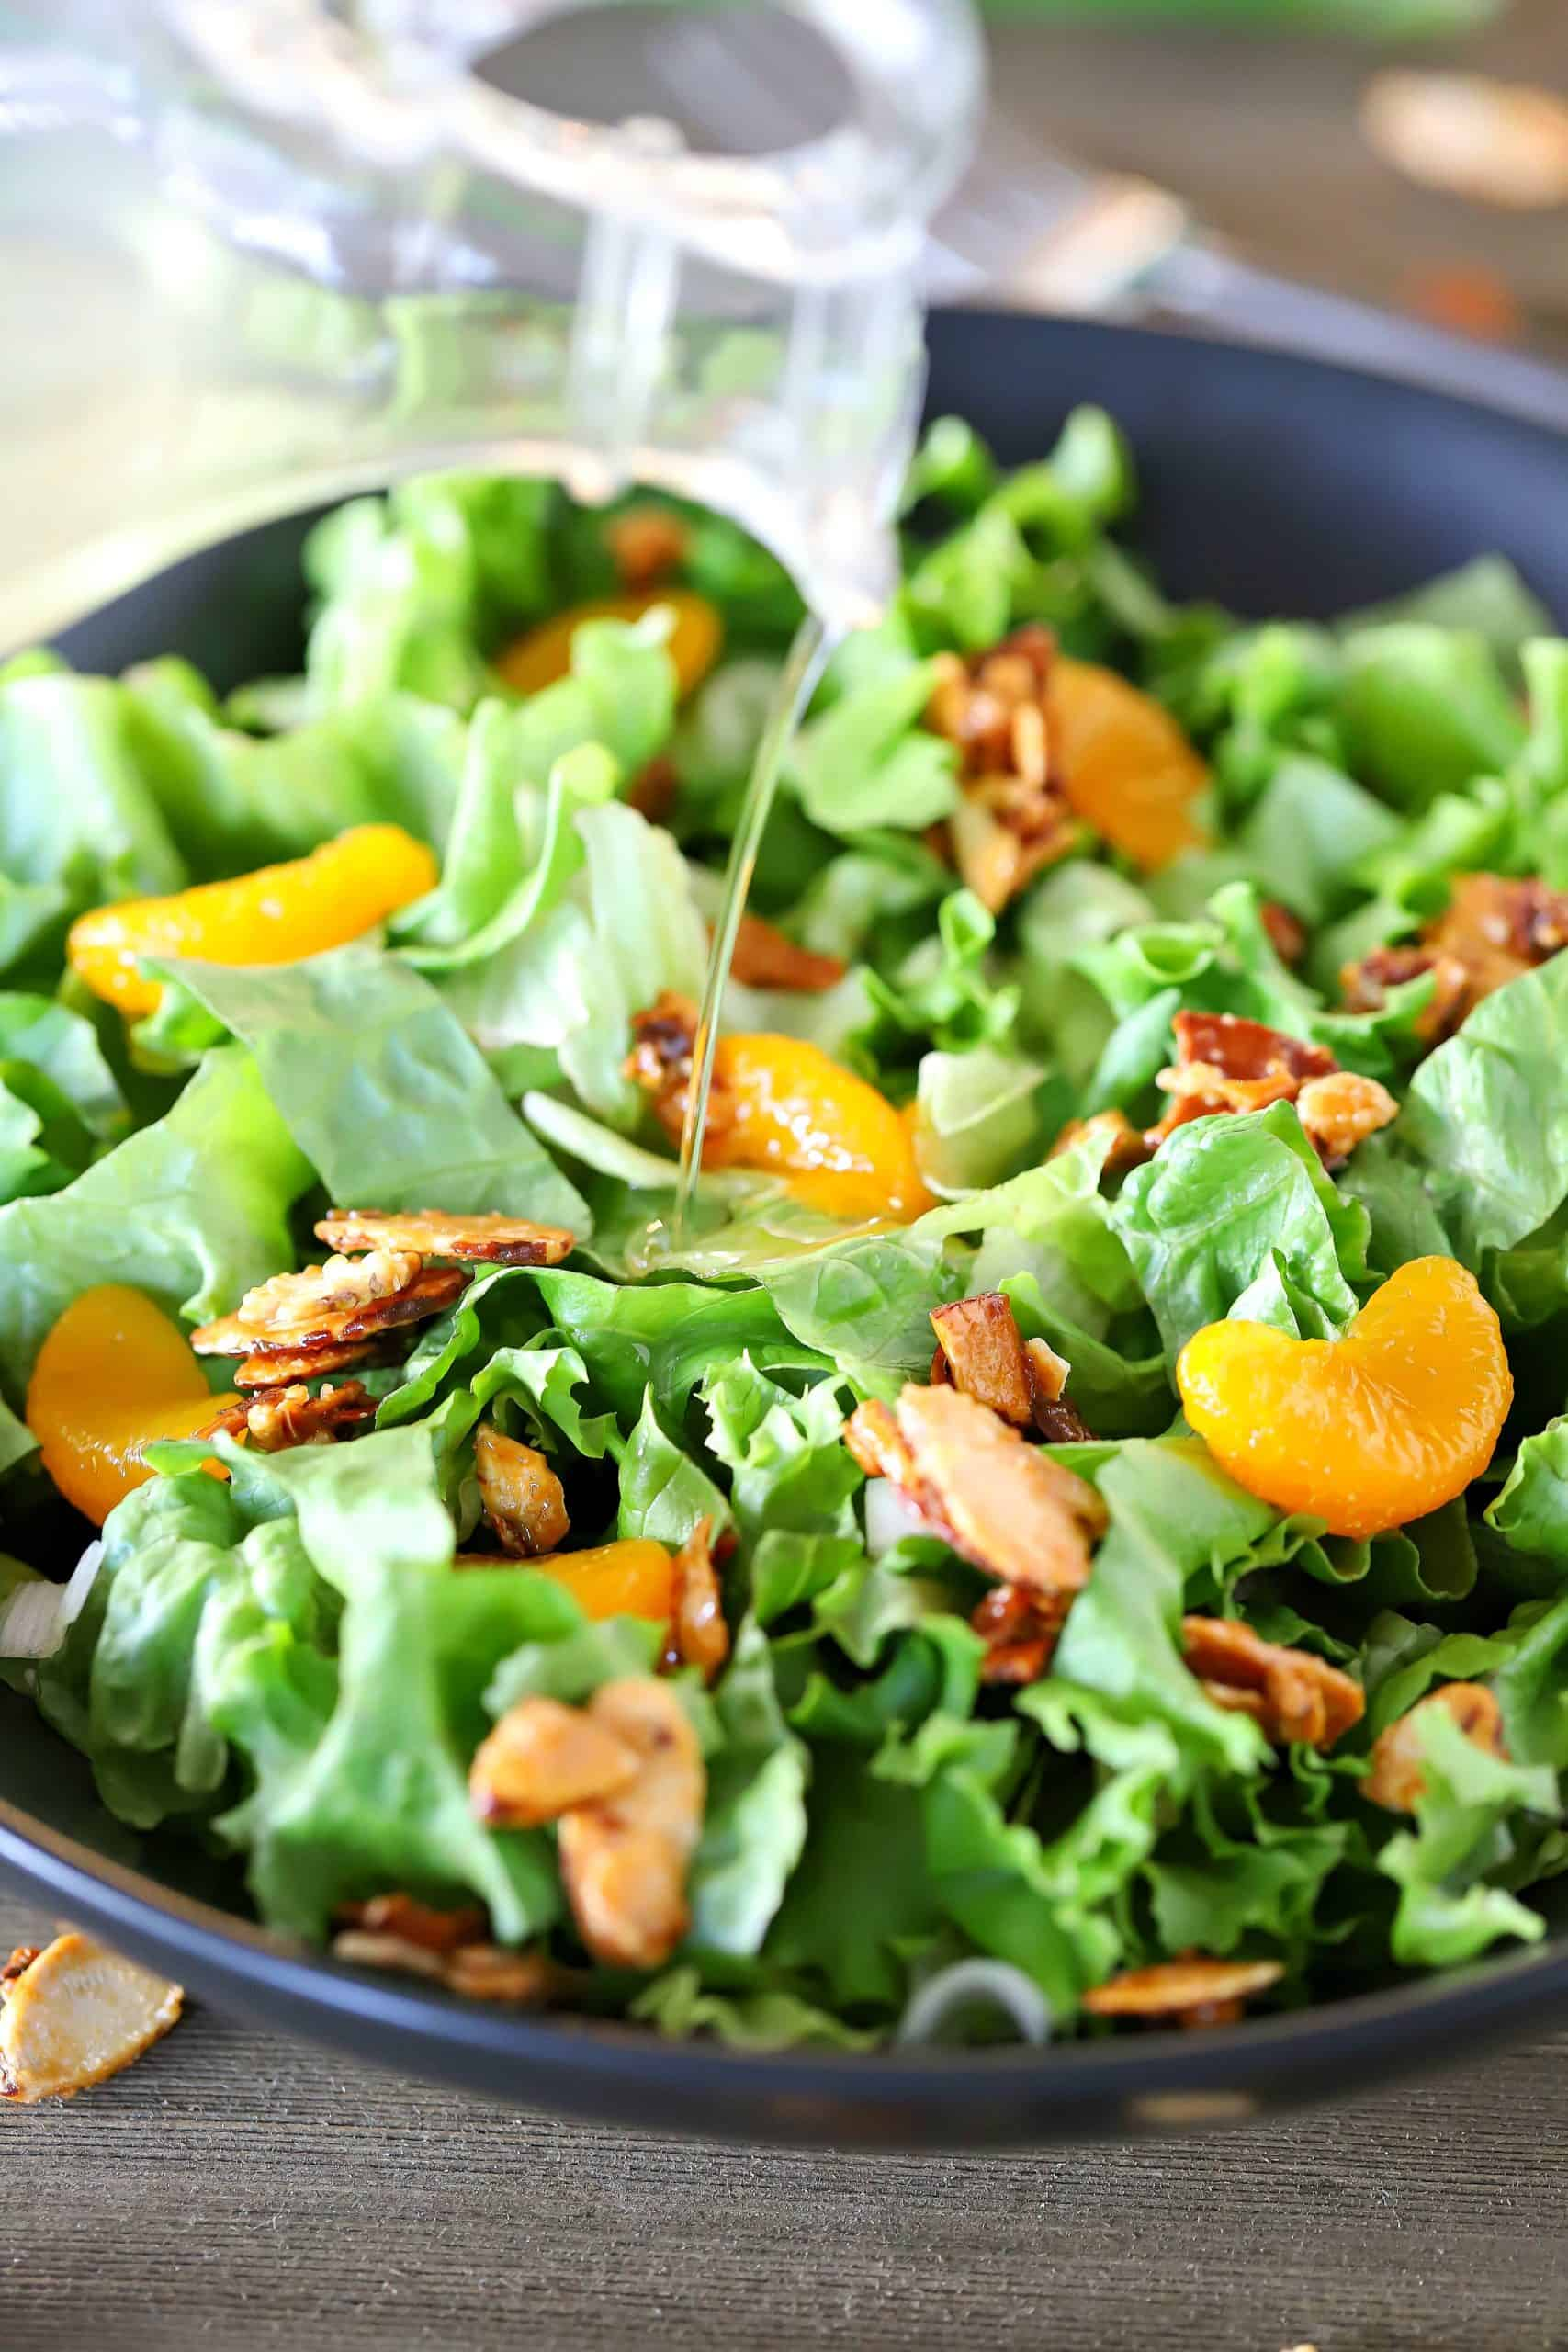 Dressing being poured over a bowl of lettuce, mandarin oranges and toasted almonds.